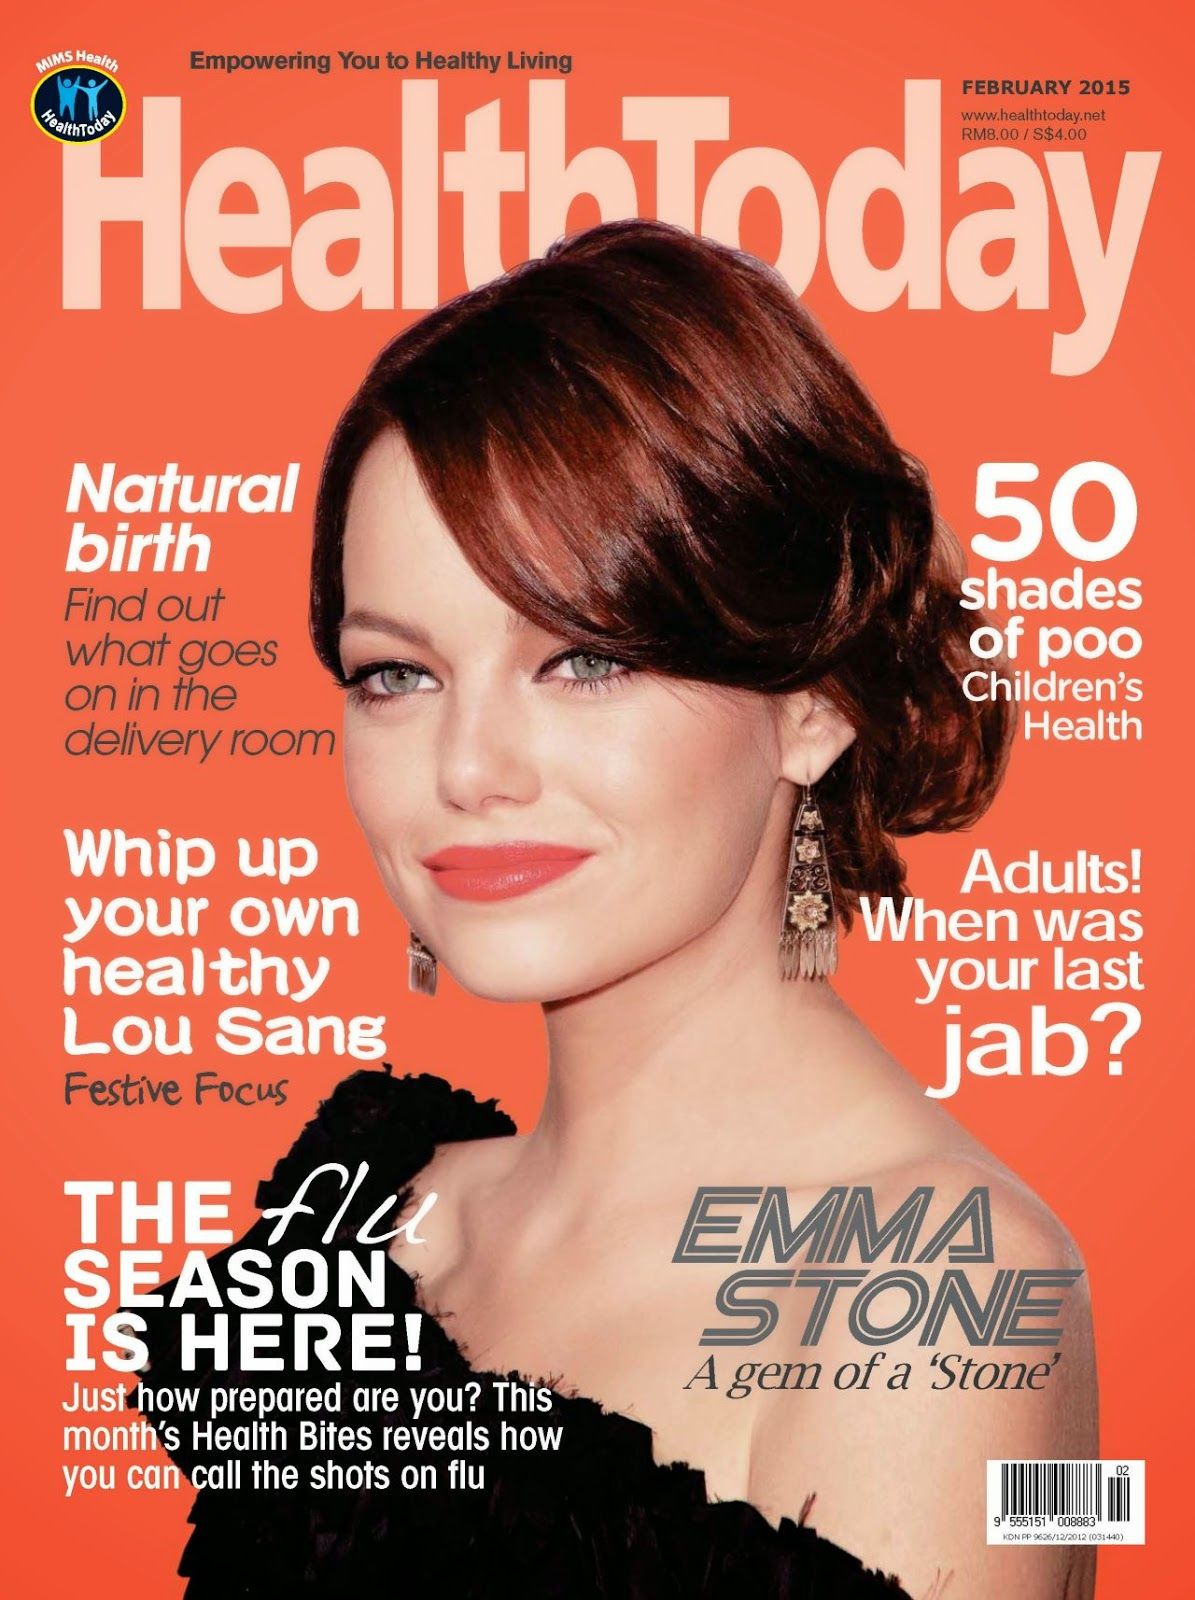 Actress, Model: Emma Stone - HealthToday Malaysia February 2015